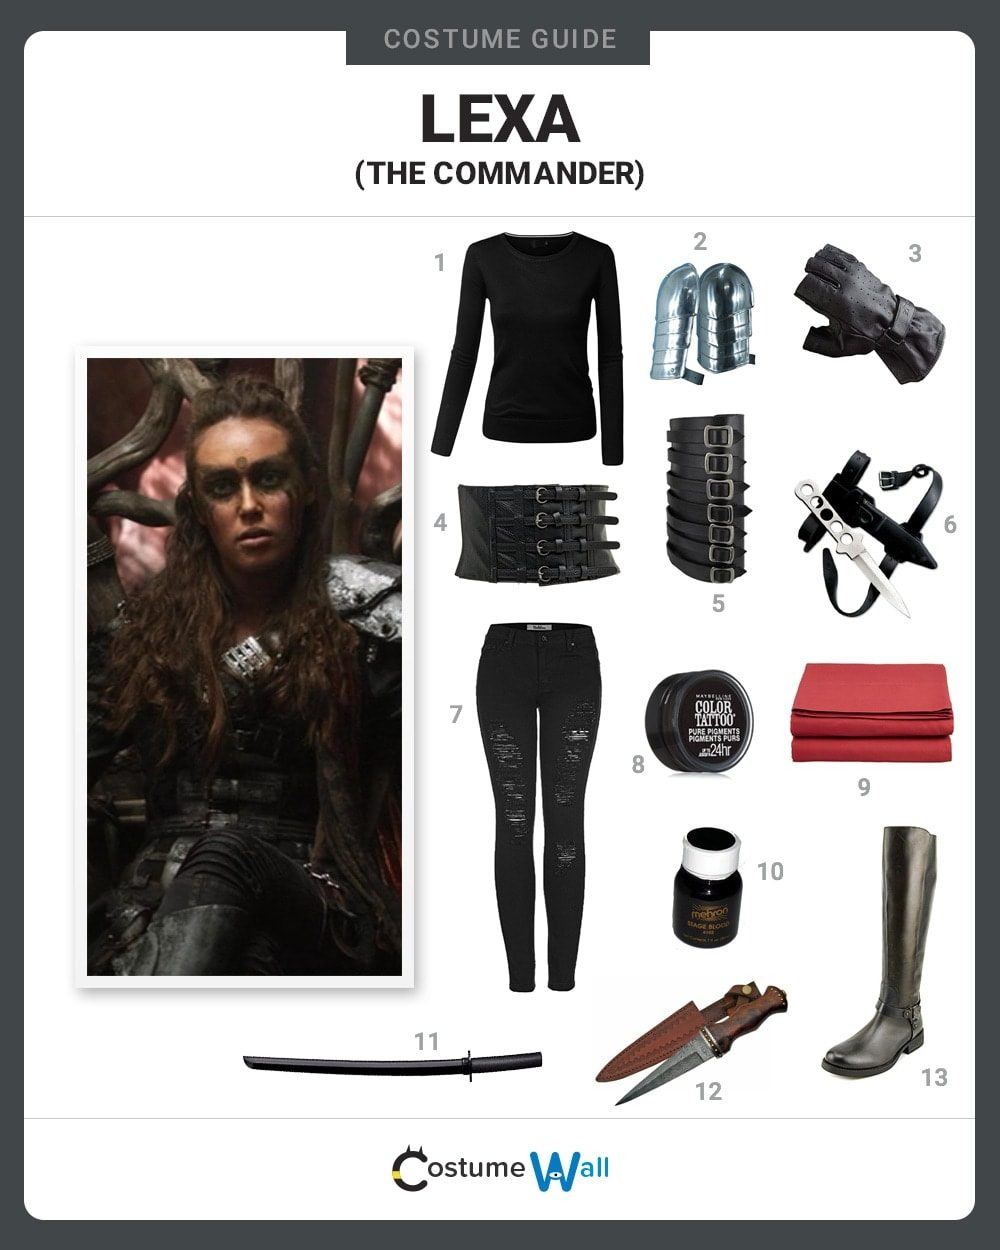 Commander Lexa Costume Guide